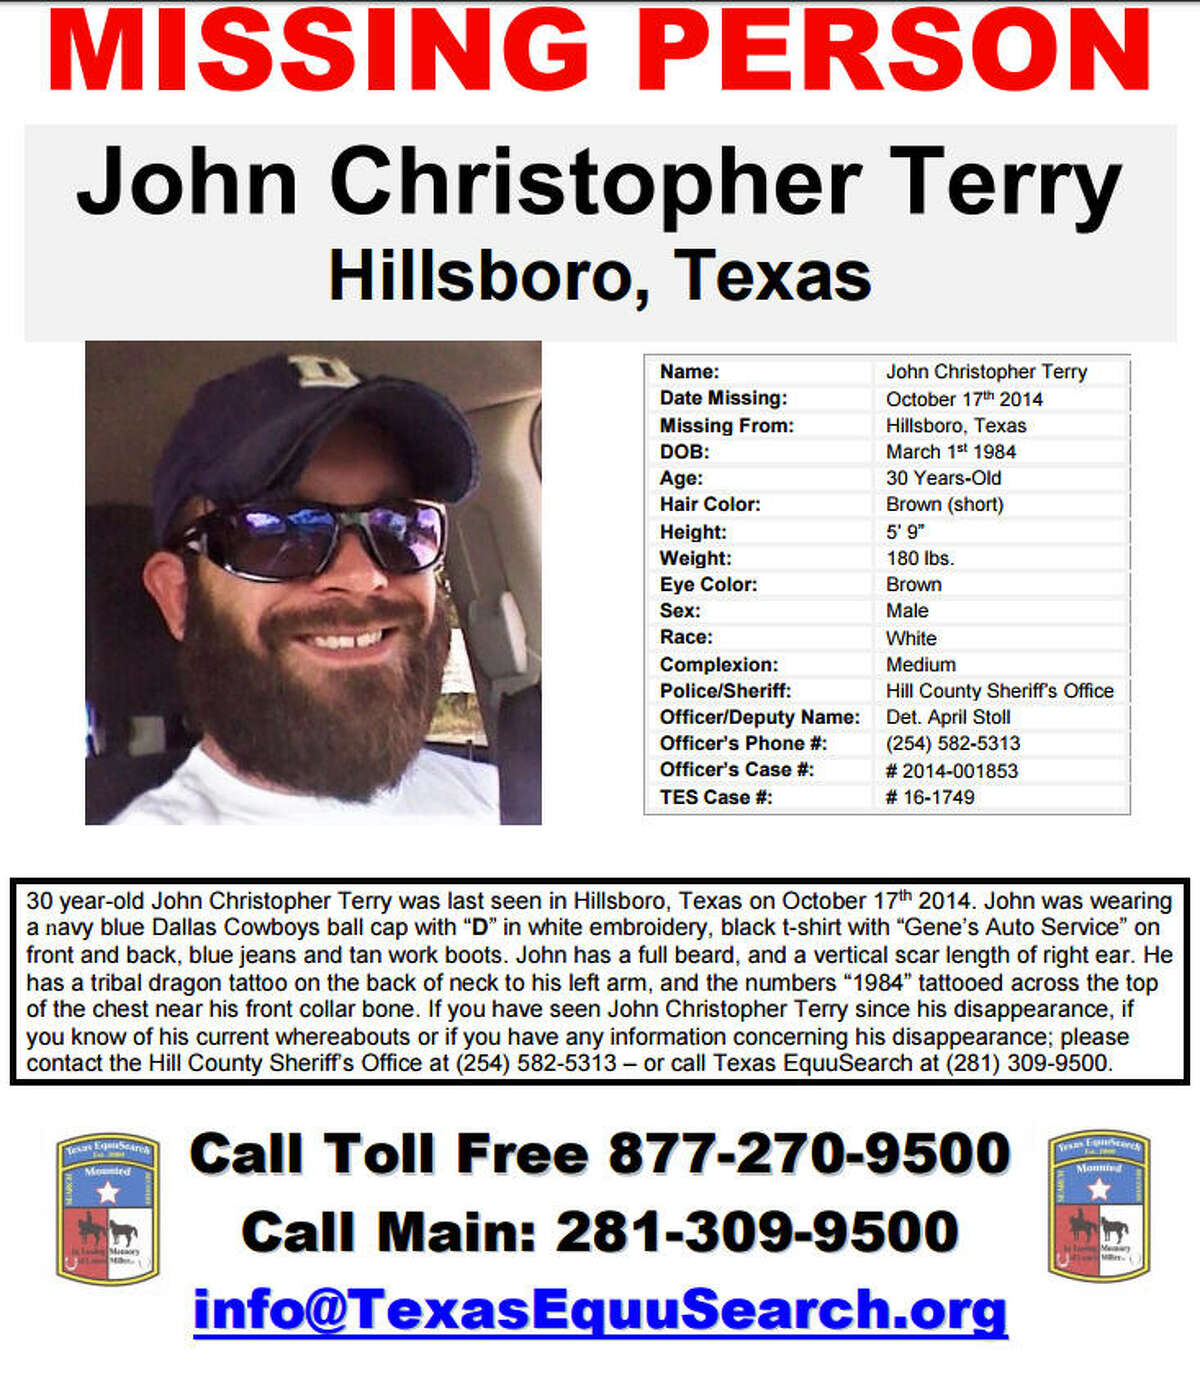 A central Texas man vanished three years ago. Now his family and friends are offering a reward. John Terry disappeared after going to Wal-Mart in October 2014. Deputies found his truck with the keys inside, but no sign of Terry.